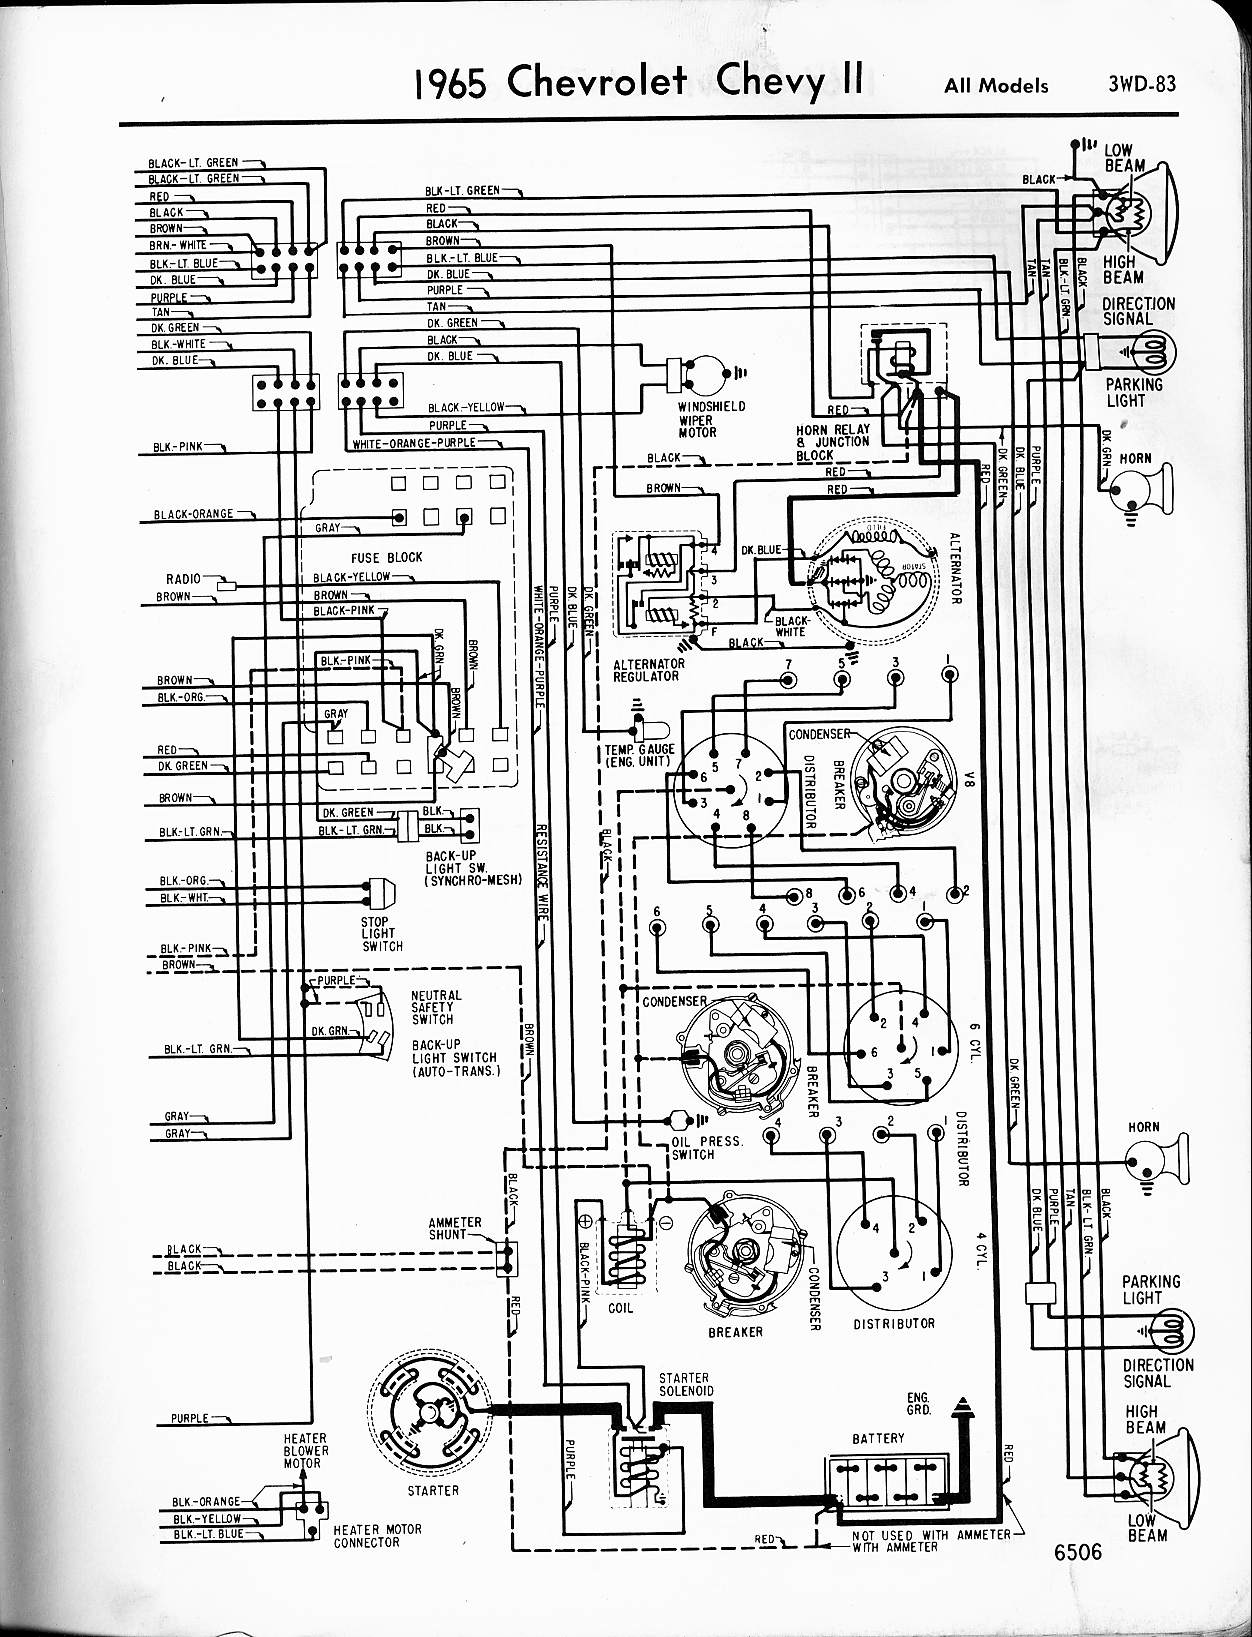 MWireChev65_3WD 083 chevy diagrams 1967 mustang headlight switch wiring diagram at bayanpartner.co